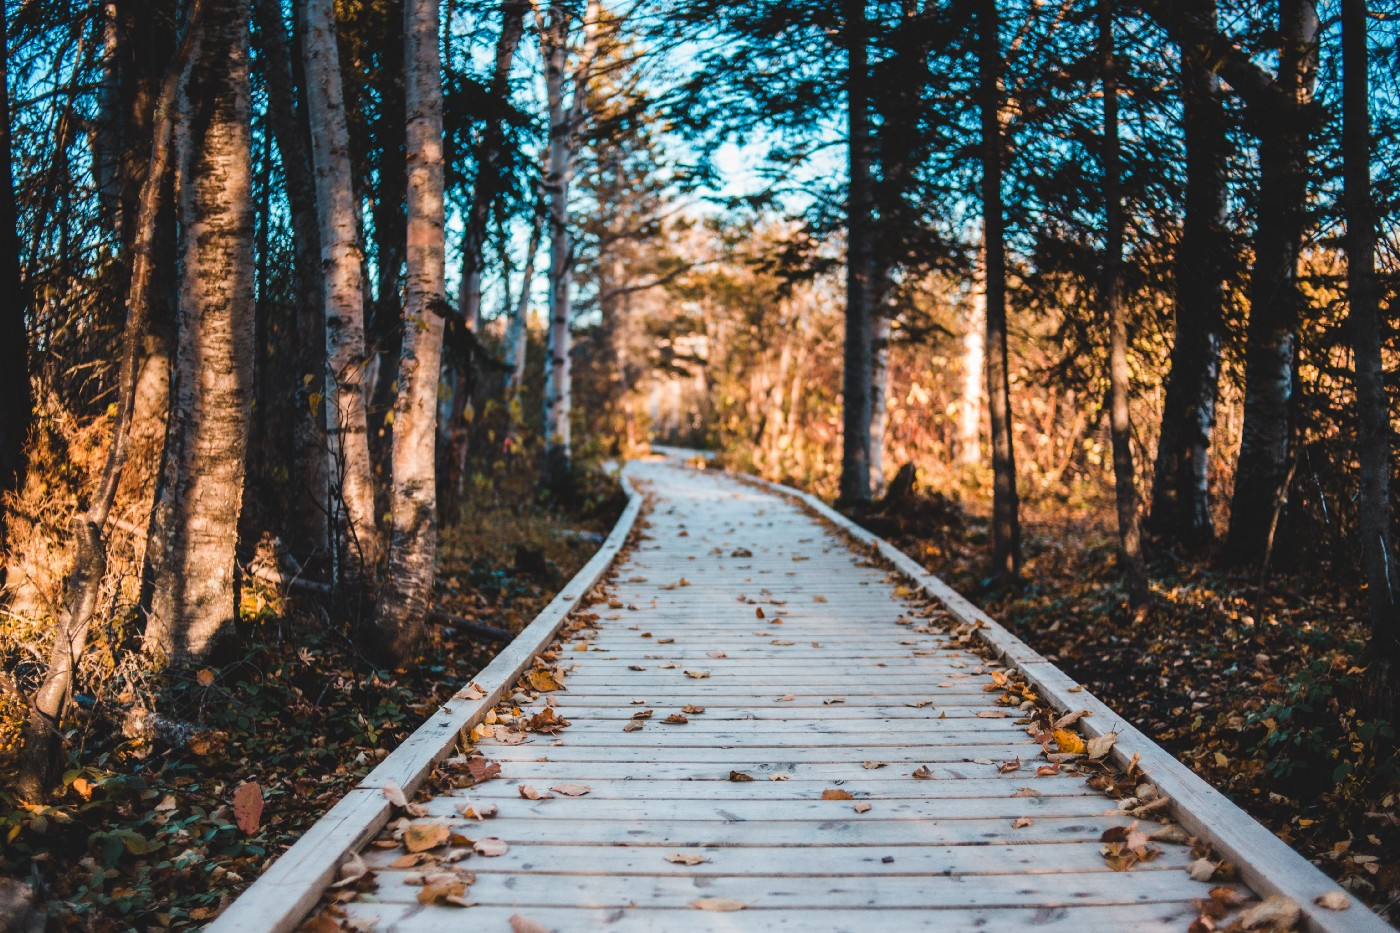 A wooden pathway through the woods on a fall day.